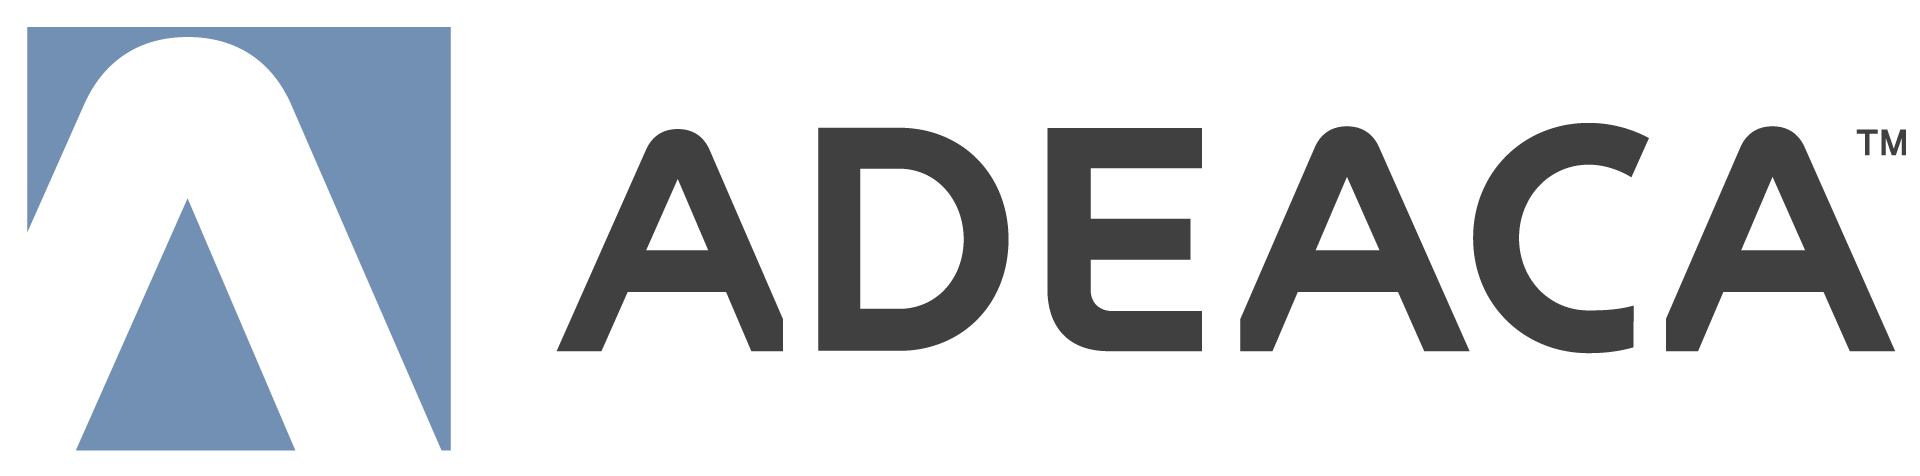 Project Business Automation Leader Matt Mong of Adeaca Shares Insights with Forbes